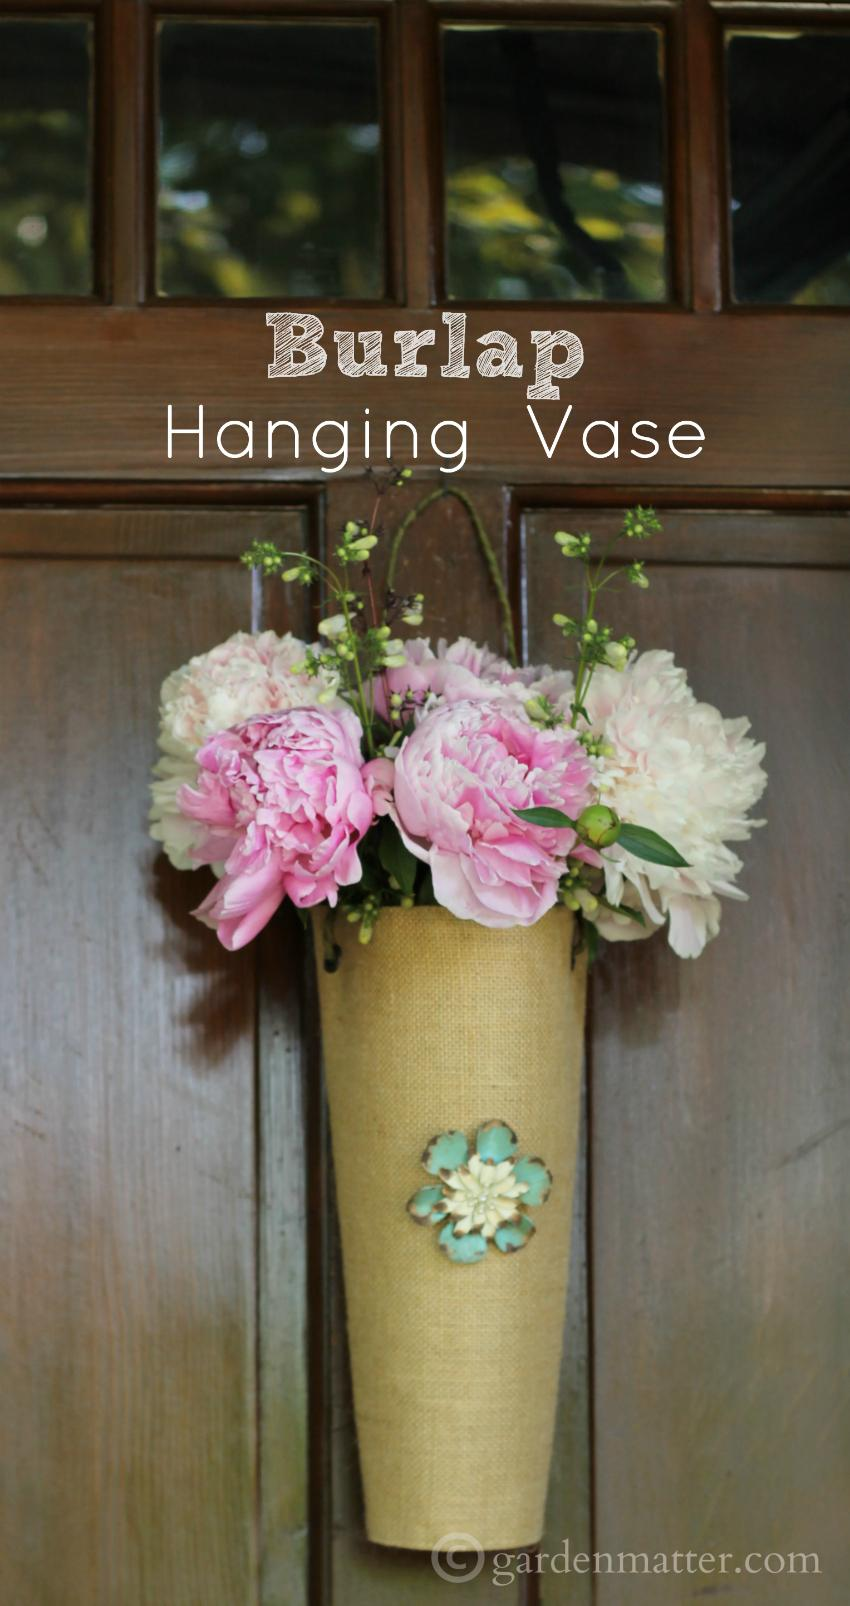 Learn how to make a simple burlap hanging burlap flower vase from a placemat. The process is easy, affordable and a great way to show off your flowers.